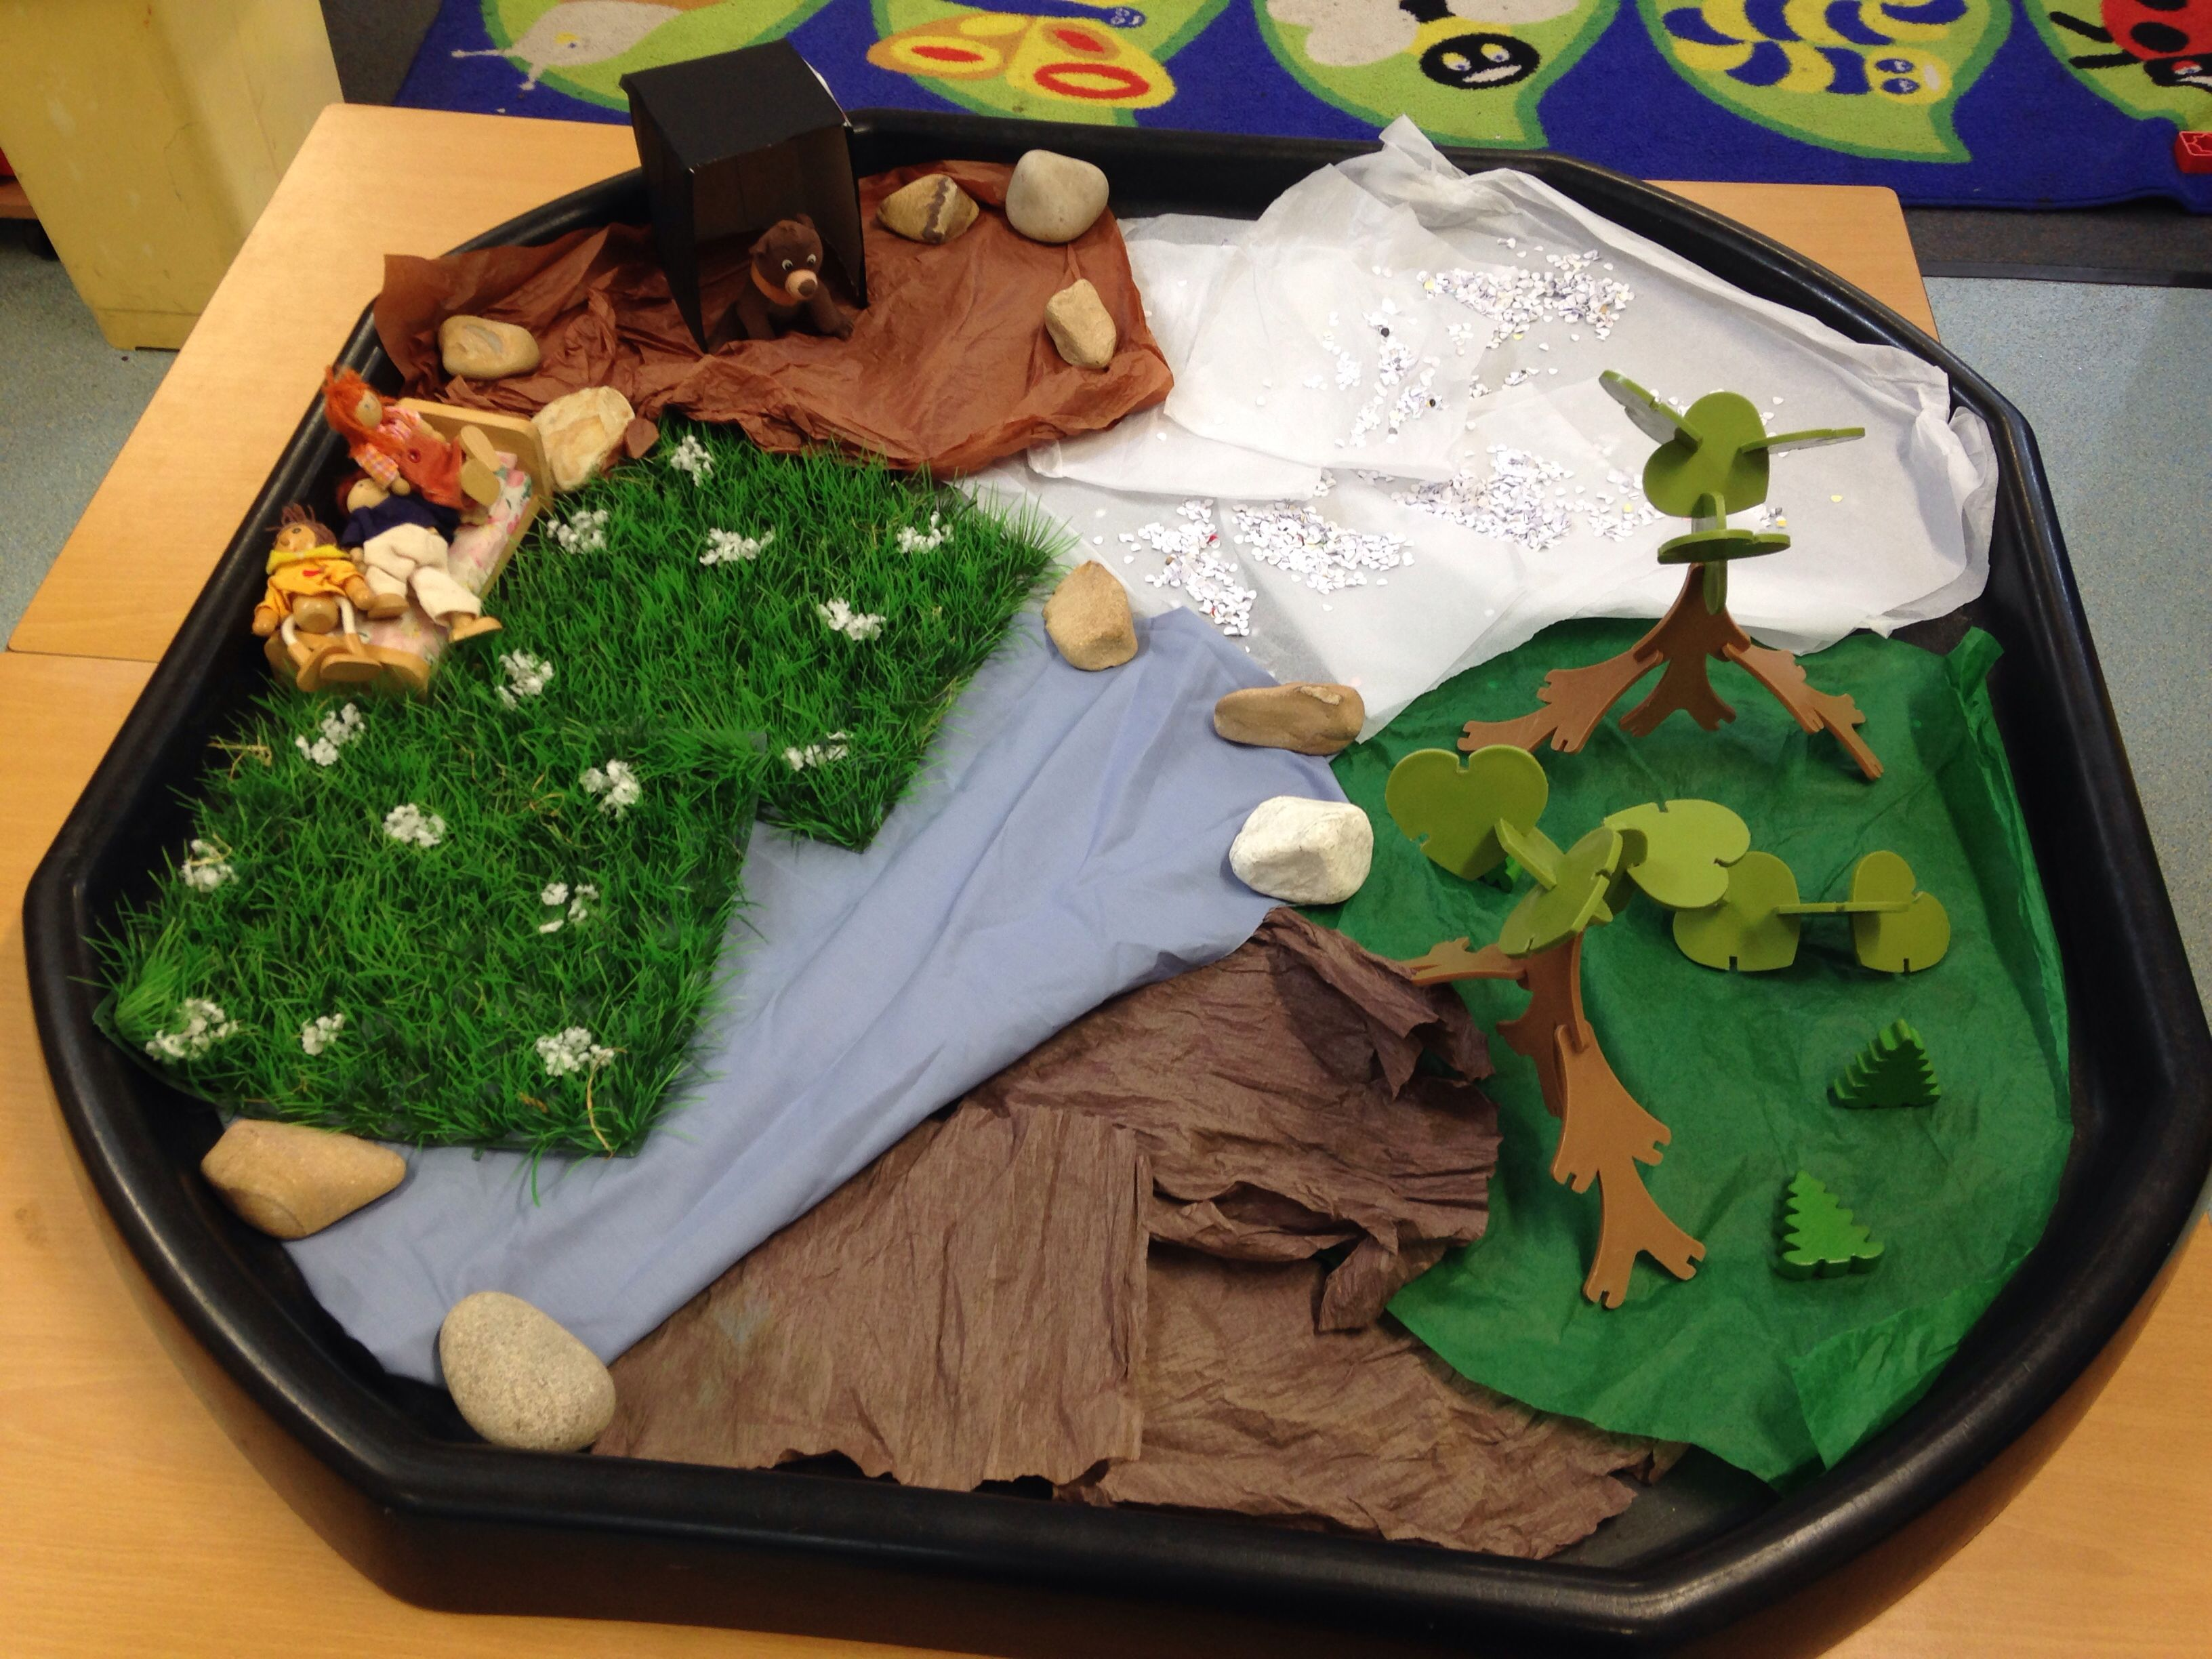 We Re Going On A Bear Hunt Small World Play